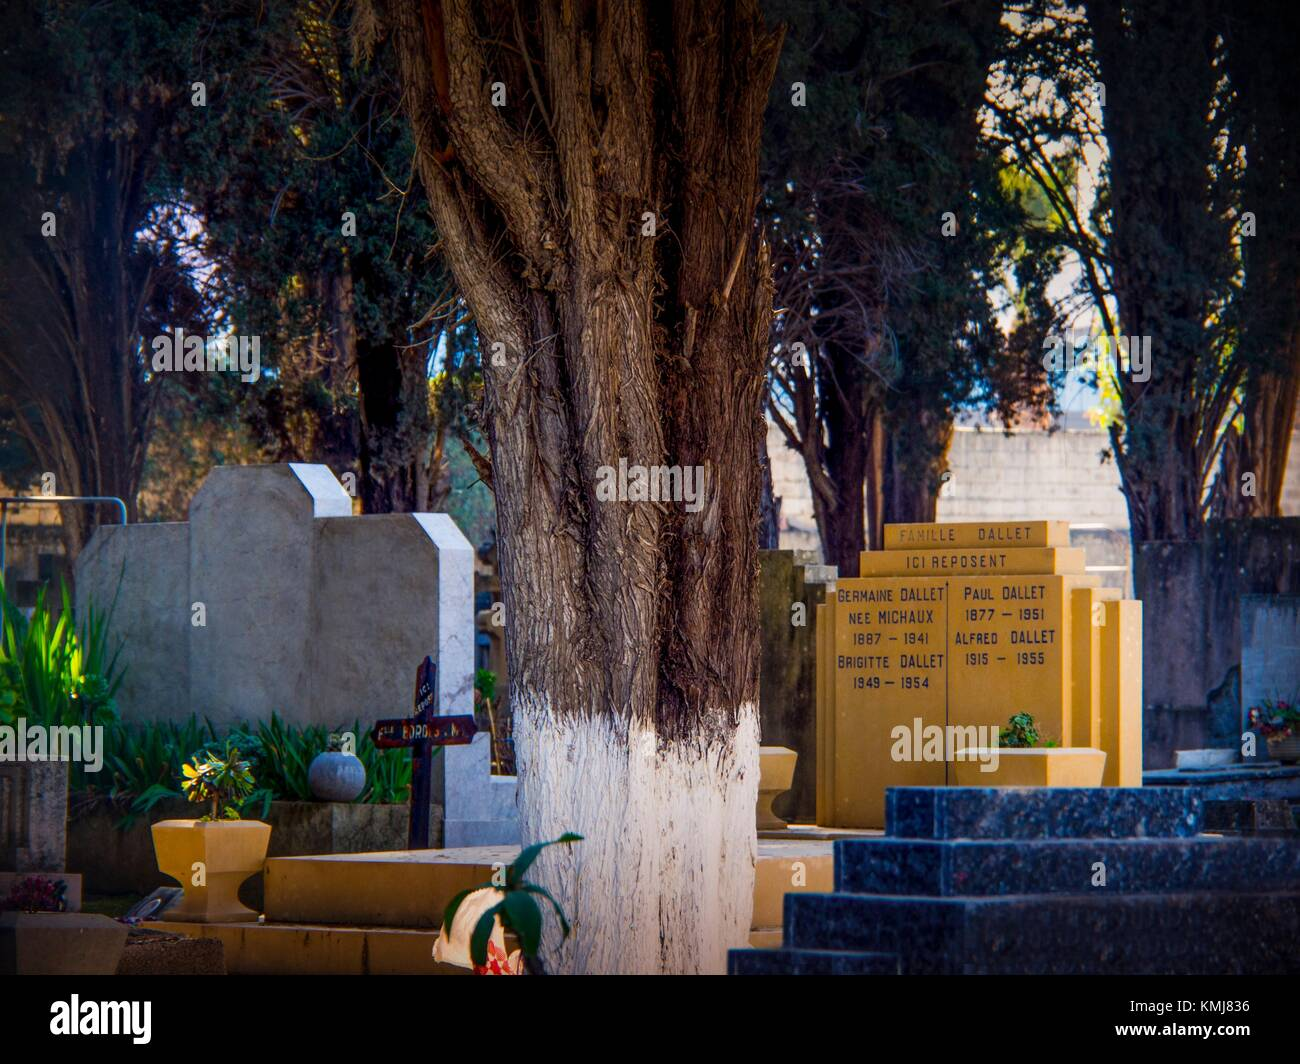 Morocco, Fes, Christian cemetery at Fes. - Stock Image